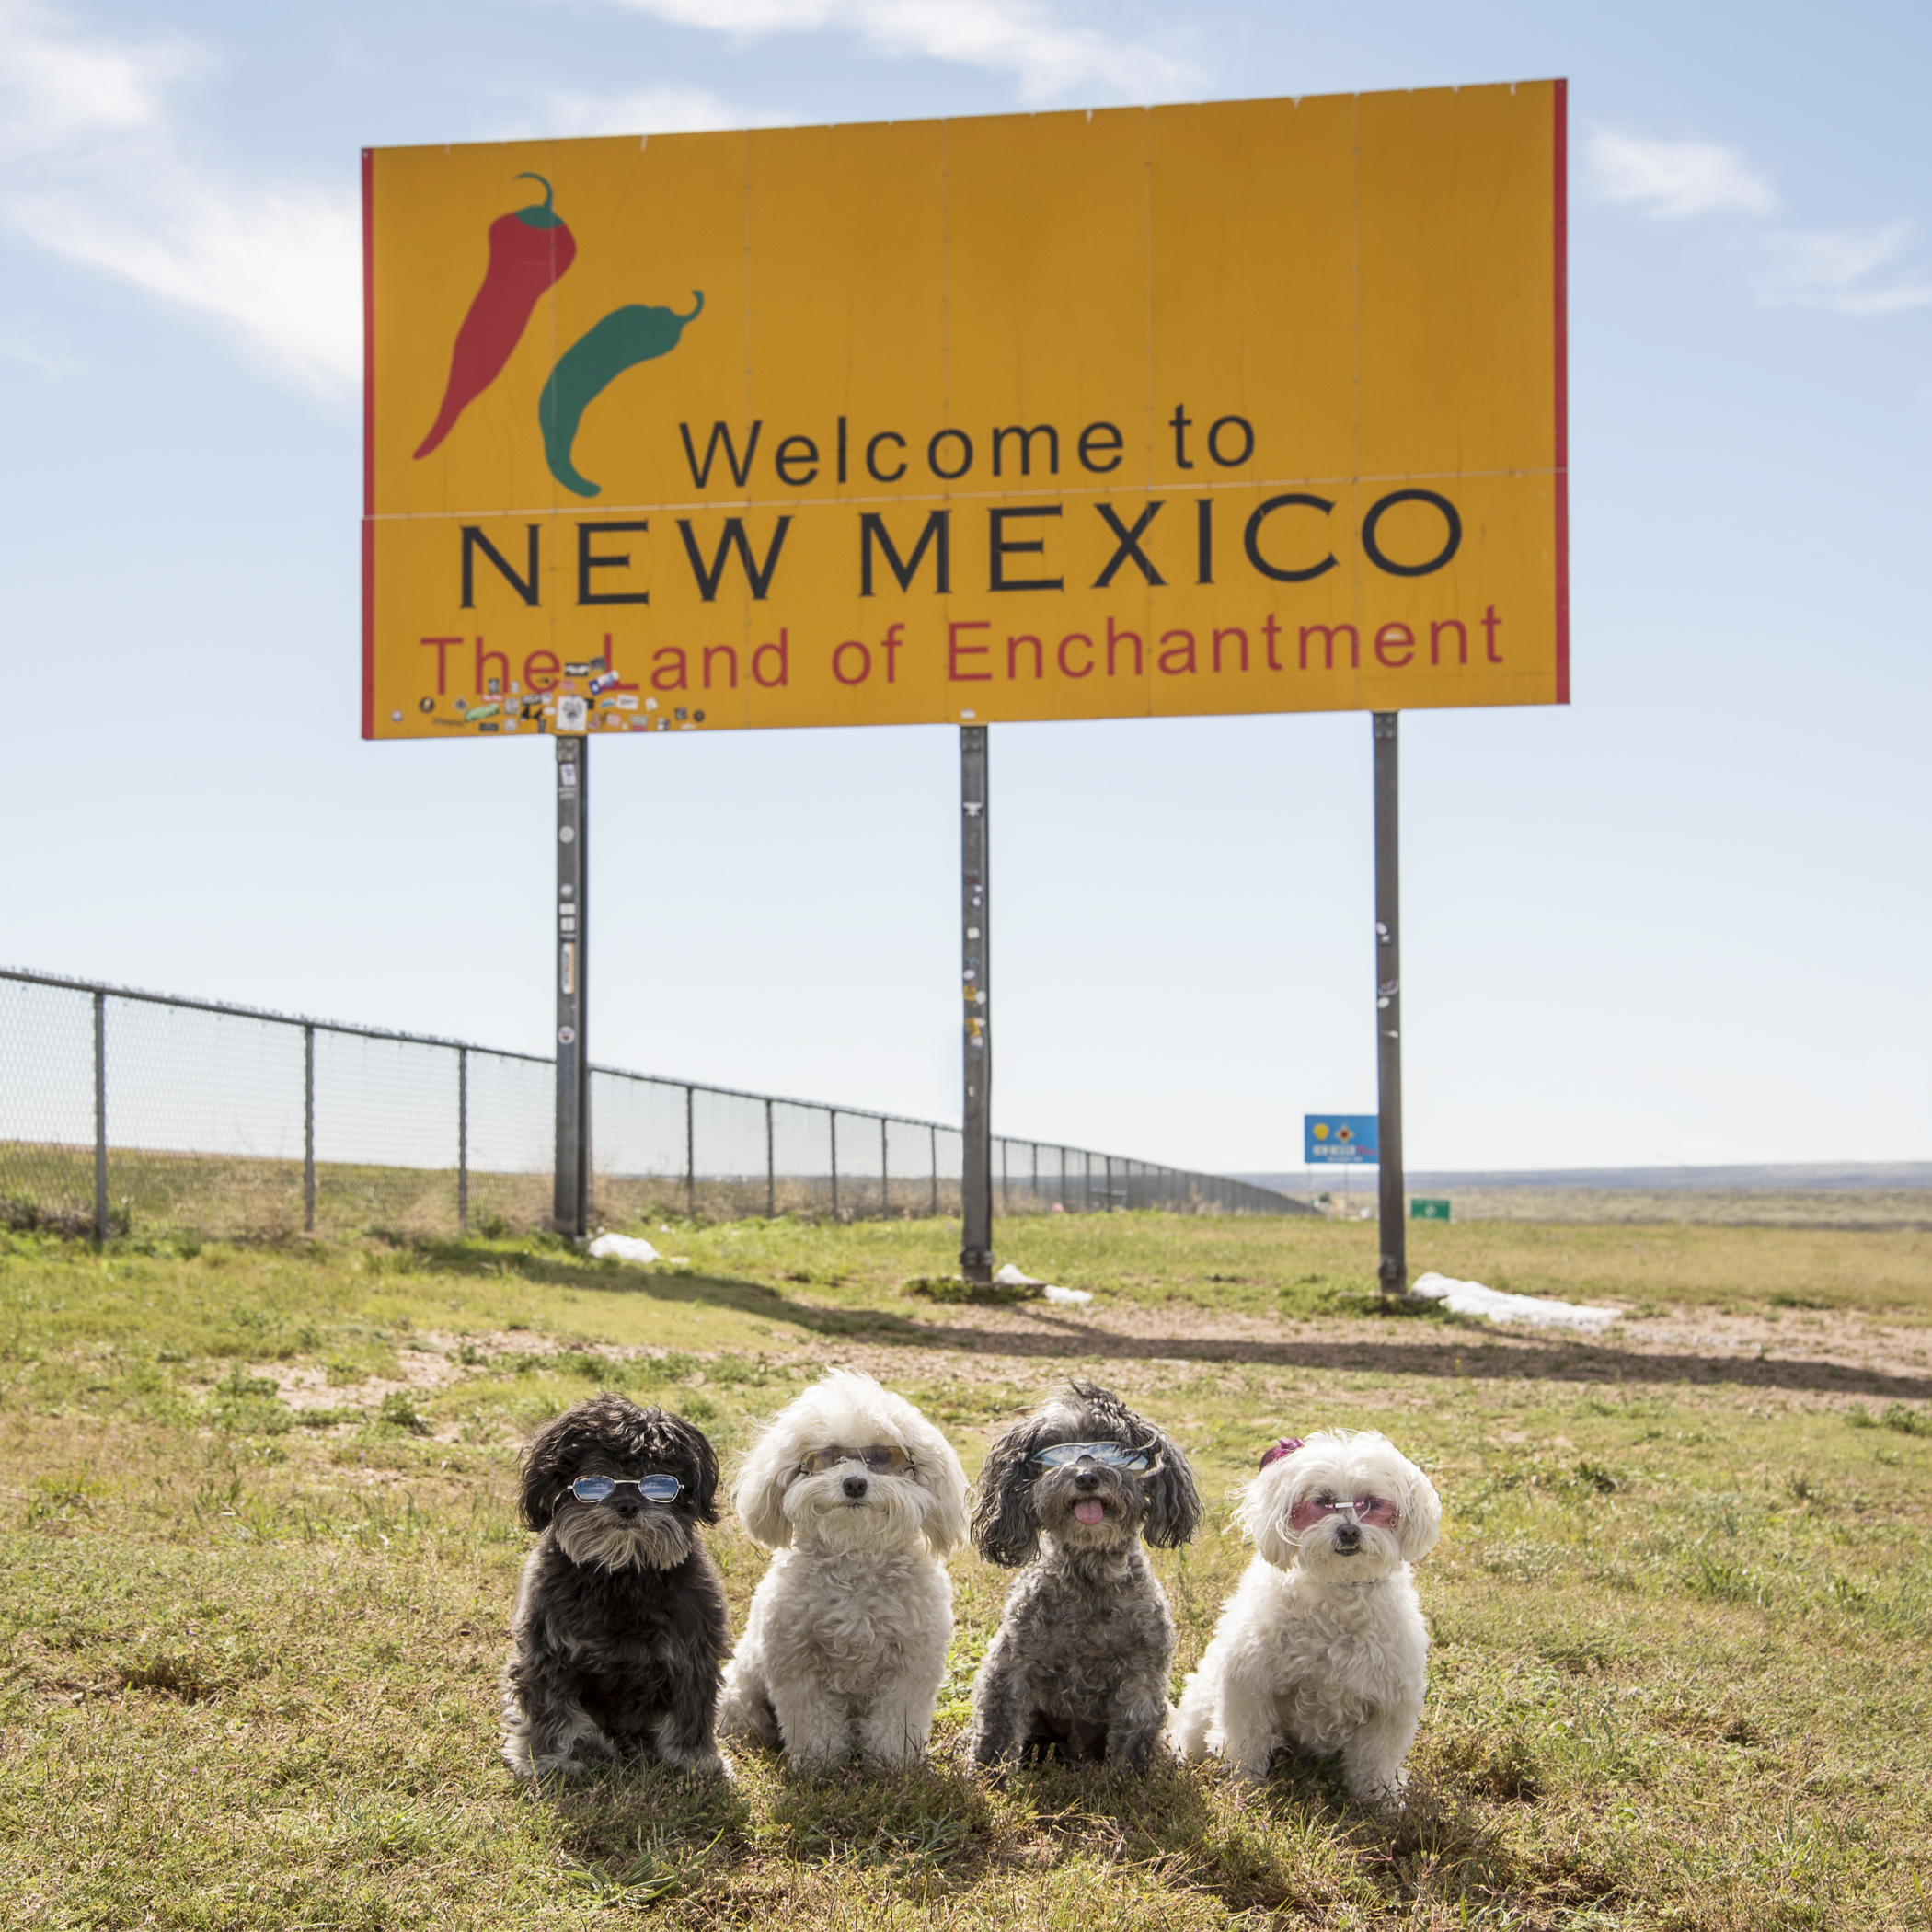 New Mexico…we have never been so happy to see you! Sun, blue skies, temperatures in the 60s, less wind, no snow, no rain…the desert is getting closer and closer! This roadie is looking up from here!